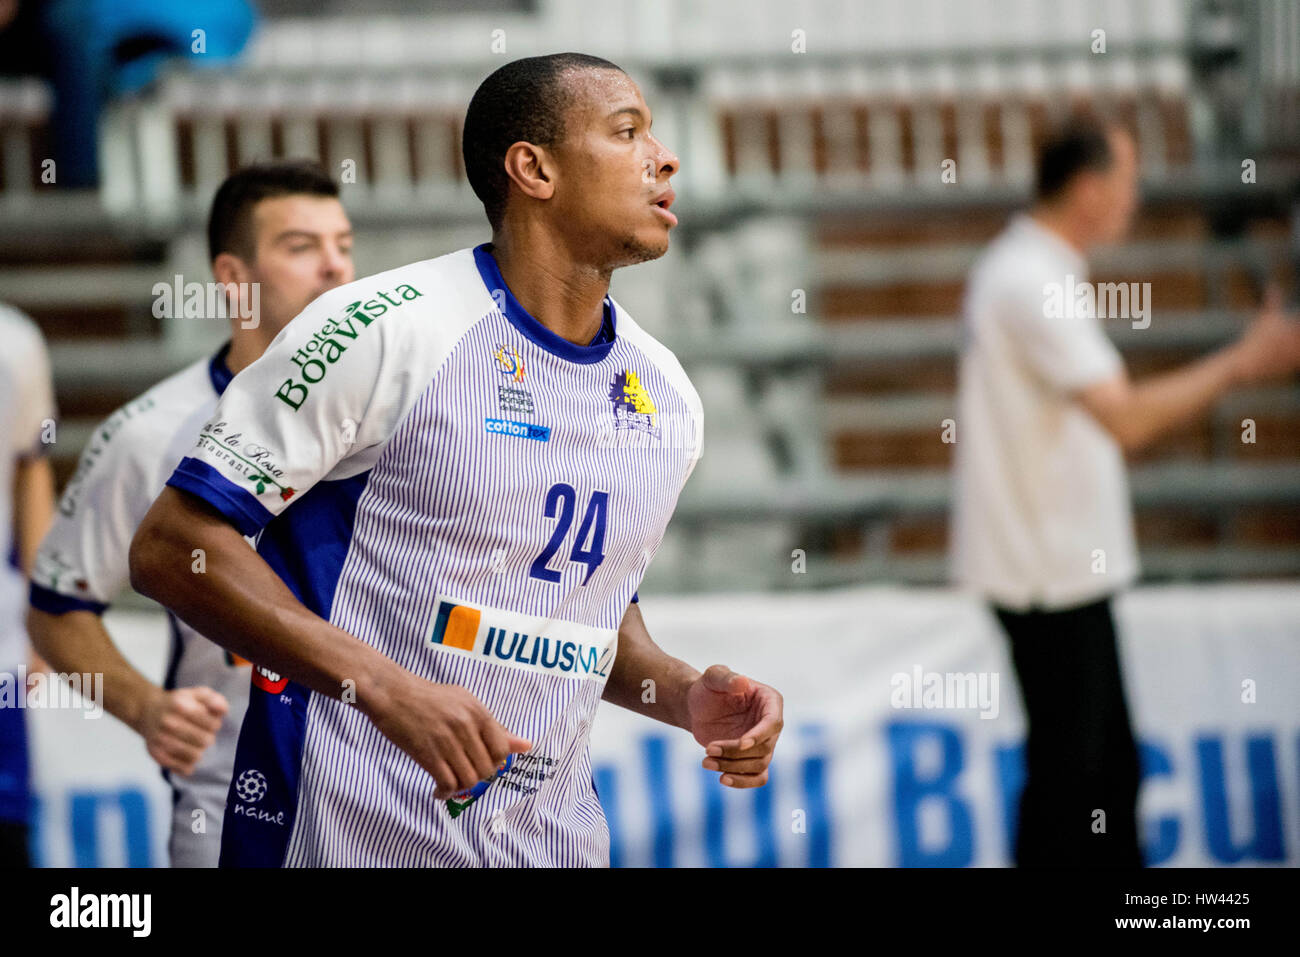 March 15, 2017: Jonte Flowers #24 of BC SCM Timisoara  during the LNBM - Men's National Basketball League game between Stock Photo